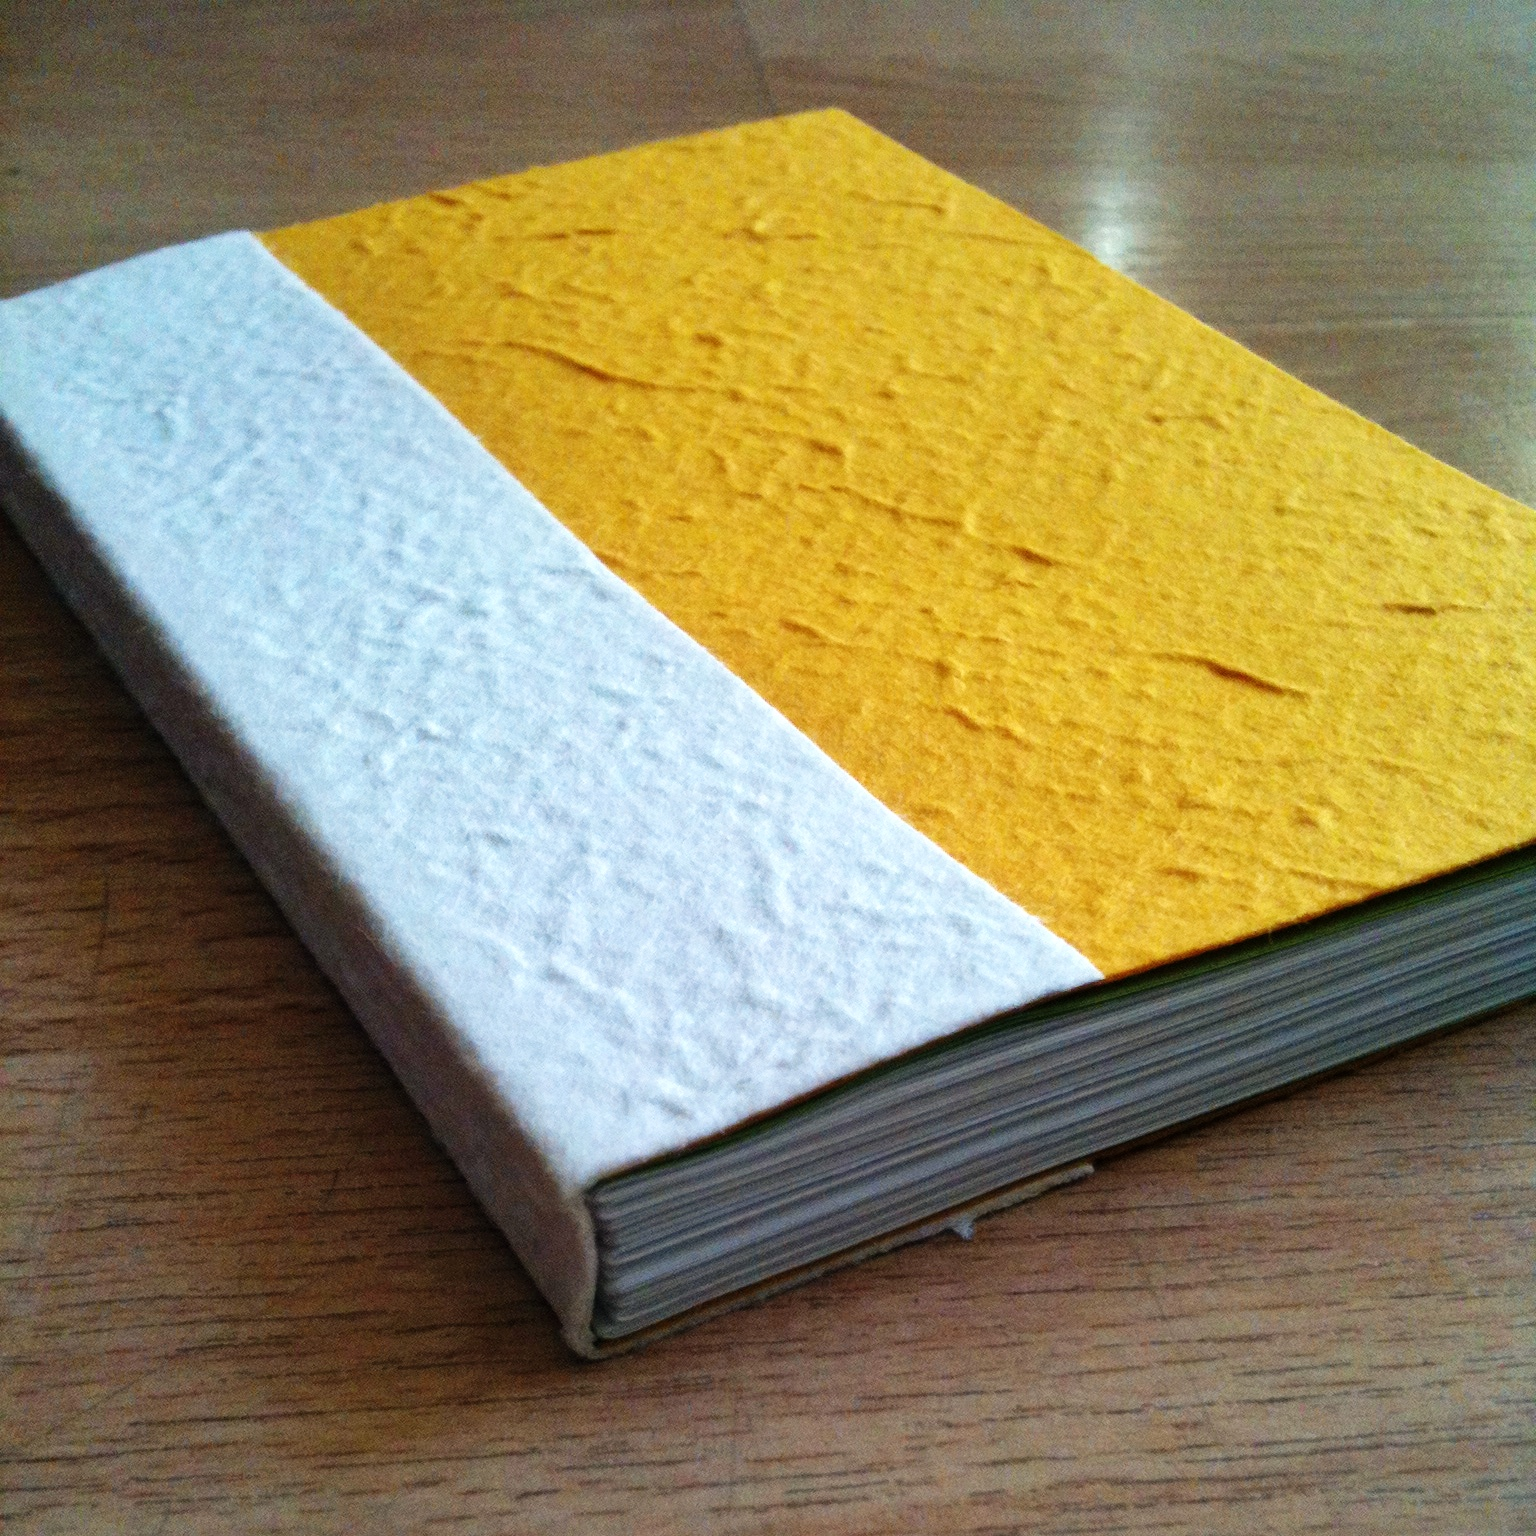 Paisley And Brown Paper: MORE Adventures In Book Binding